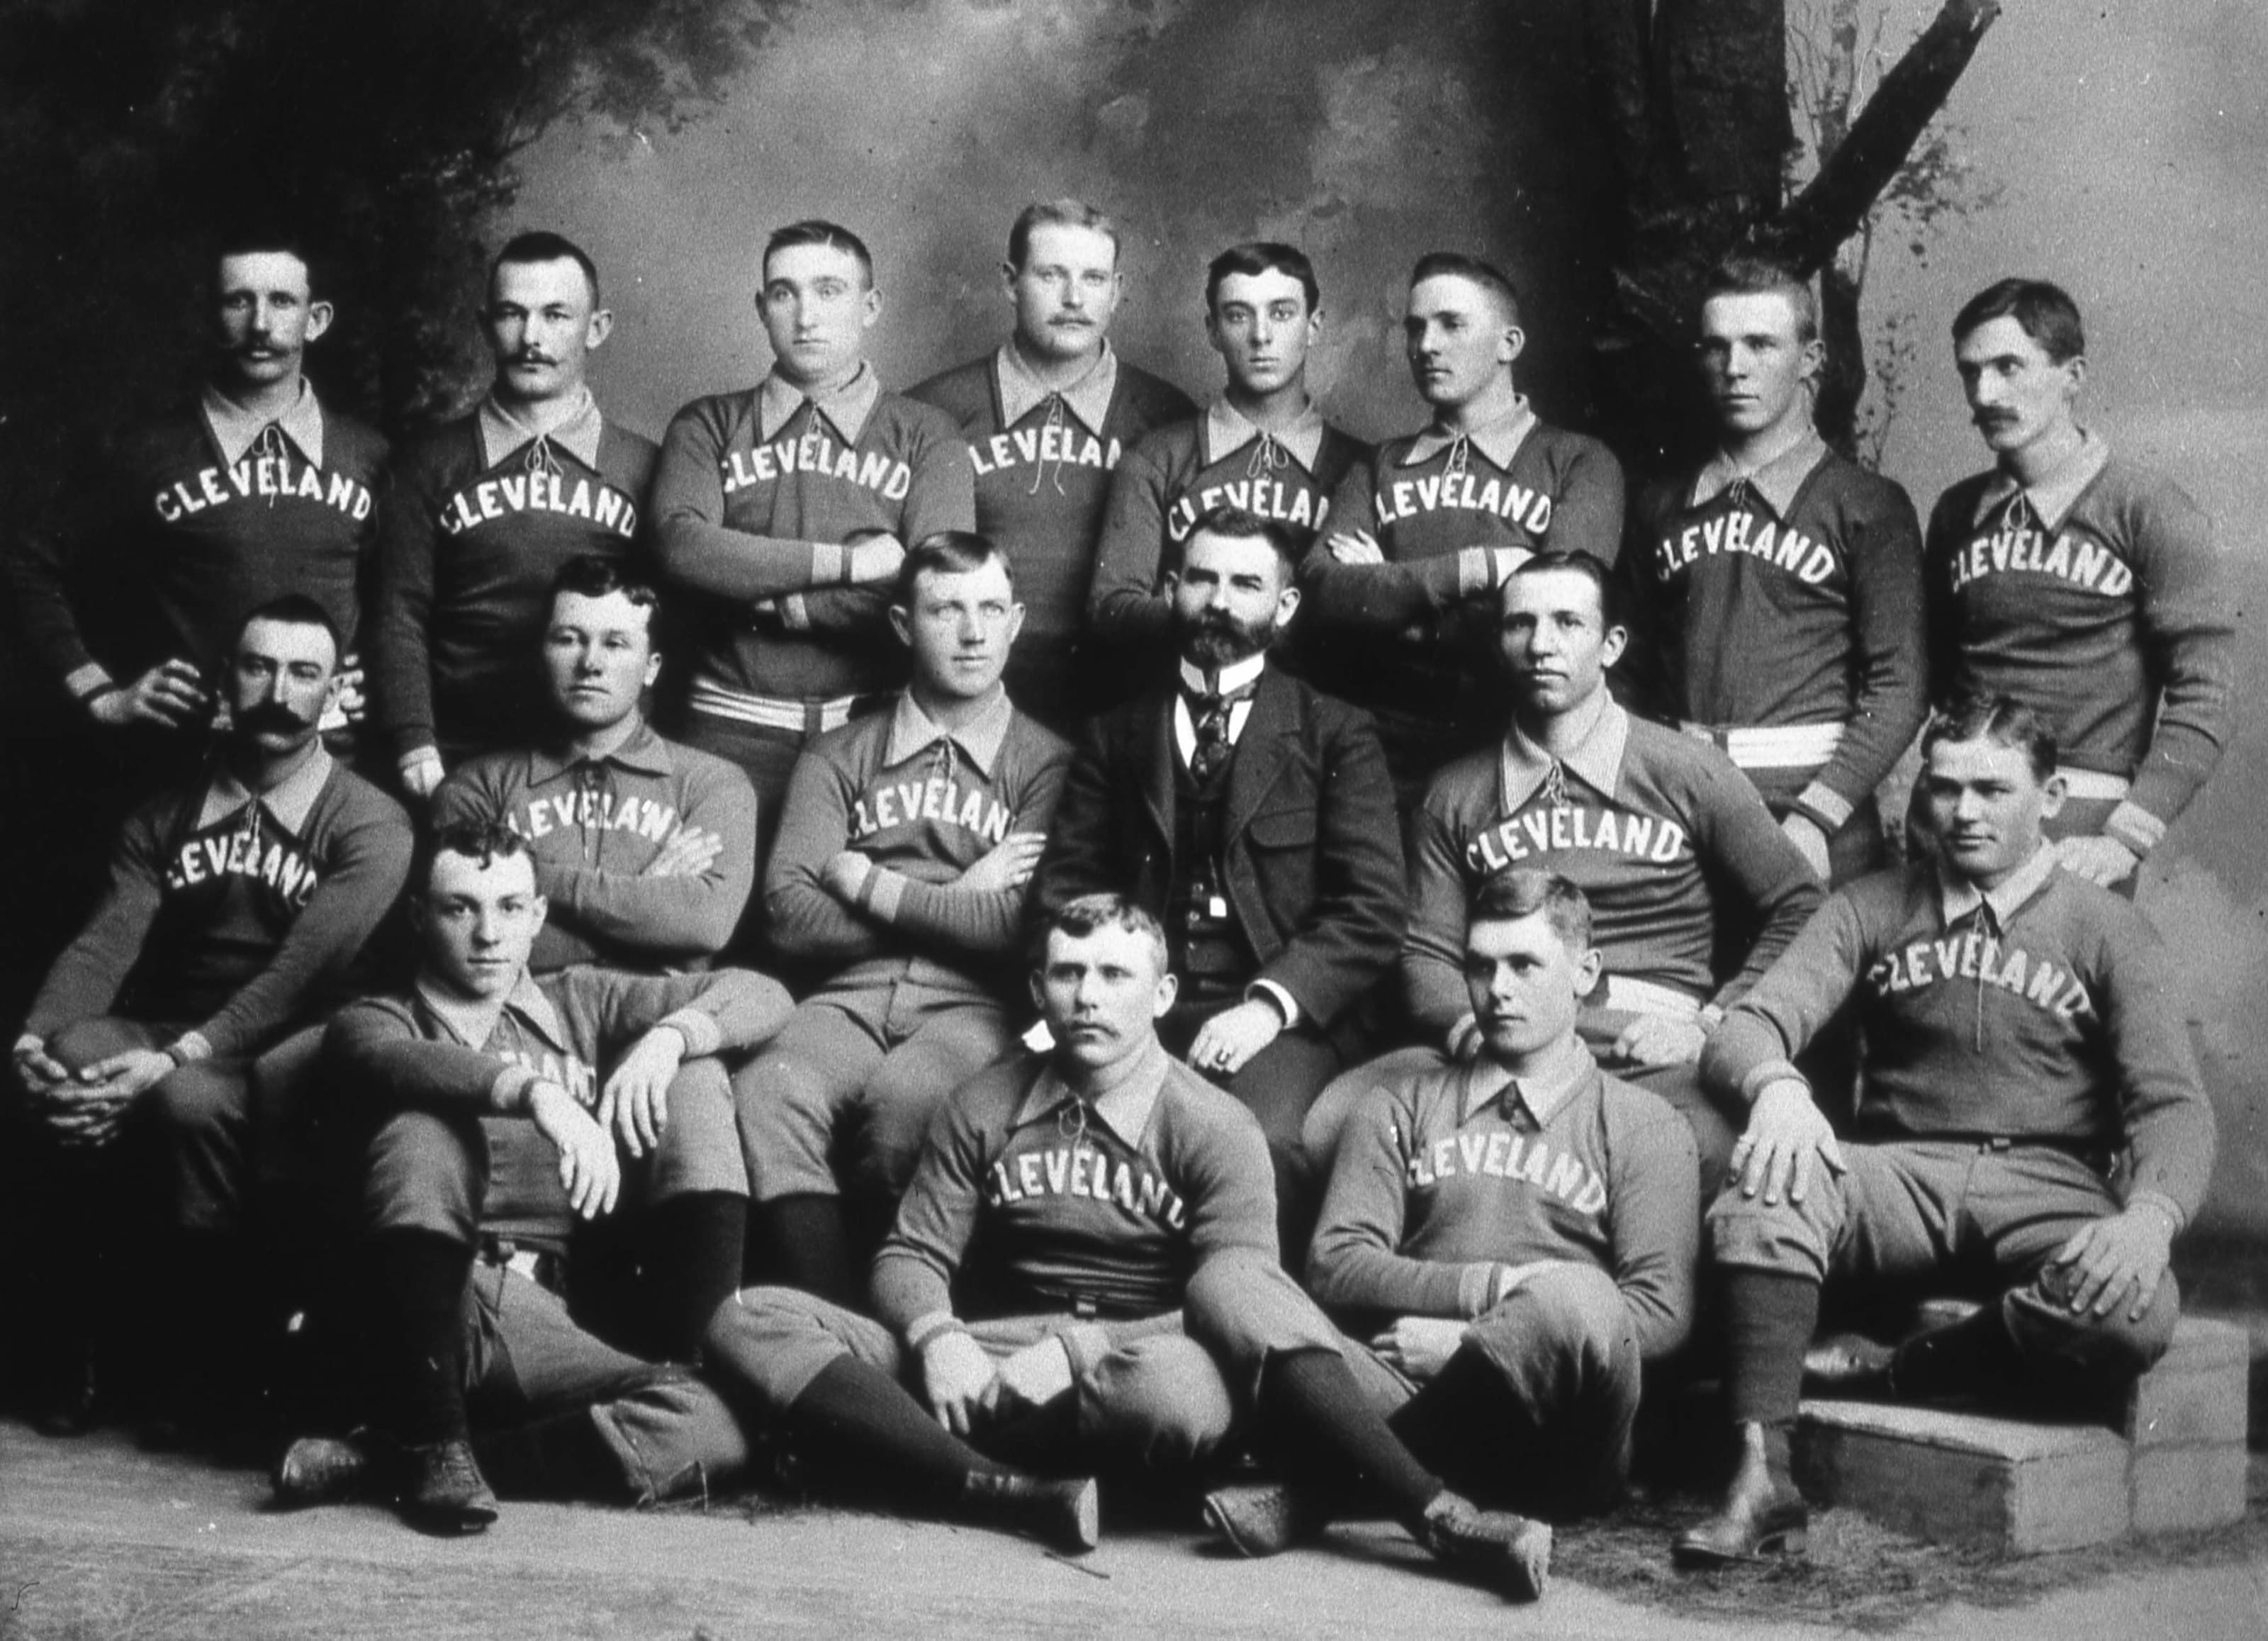 The Cleveland Spiders Base Ball Club poses for a team portrait in 1890. Cy Young is in the photo, middle row, third from left.